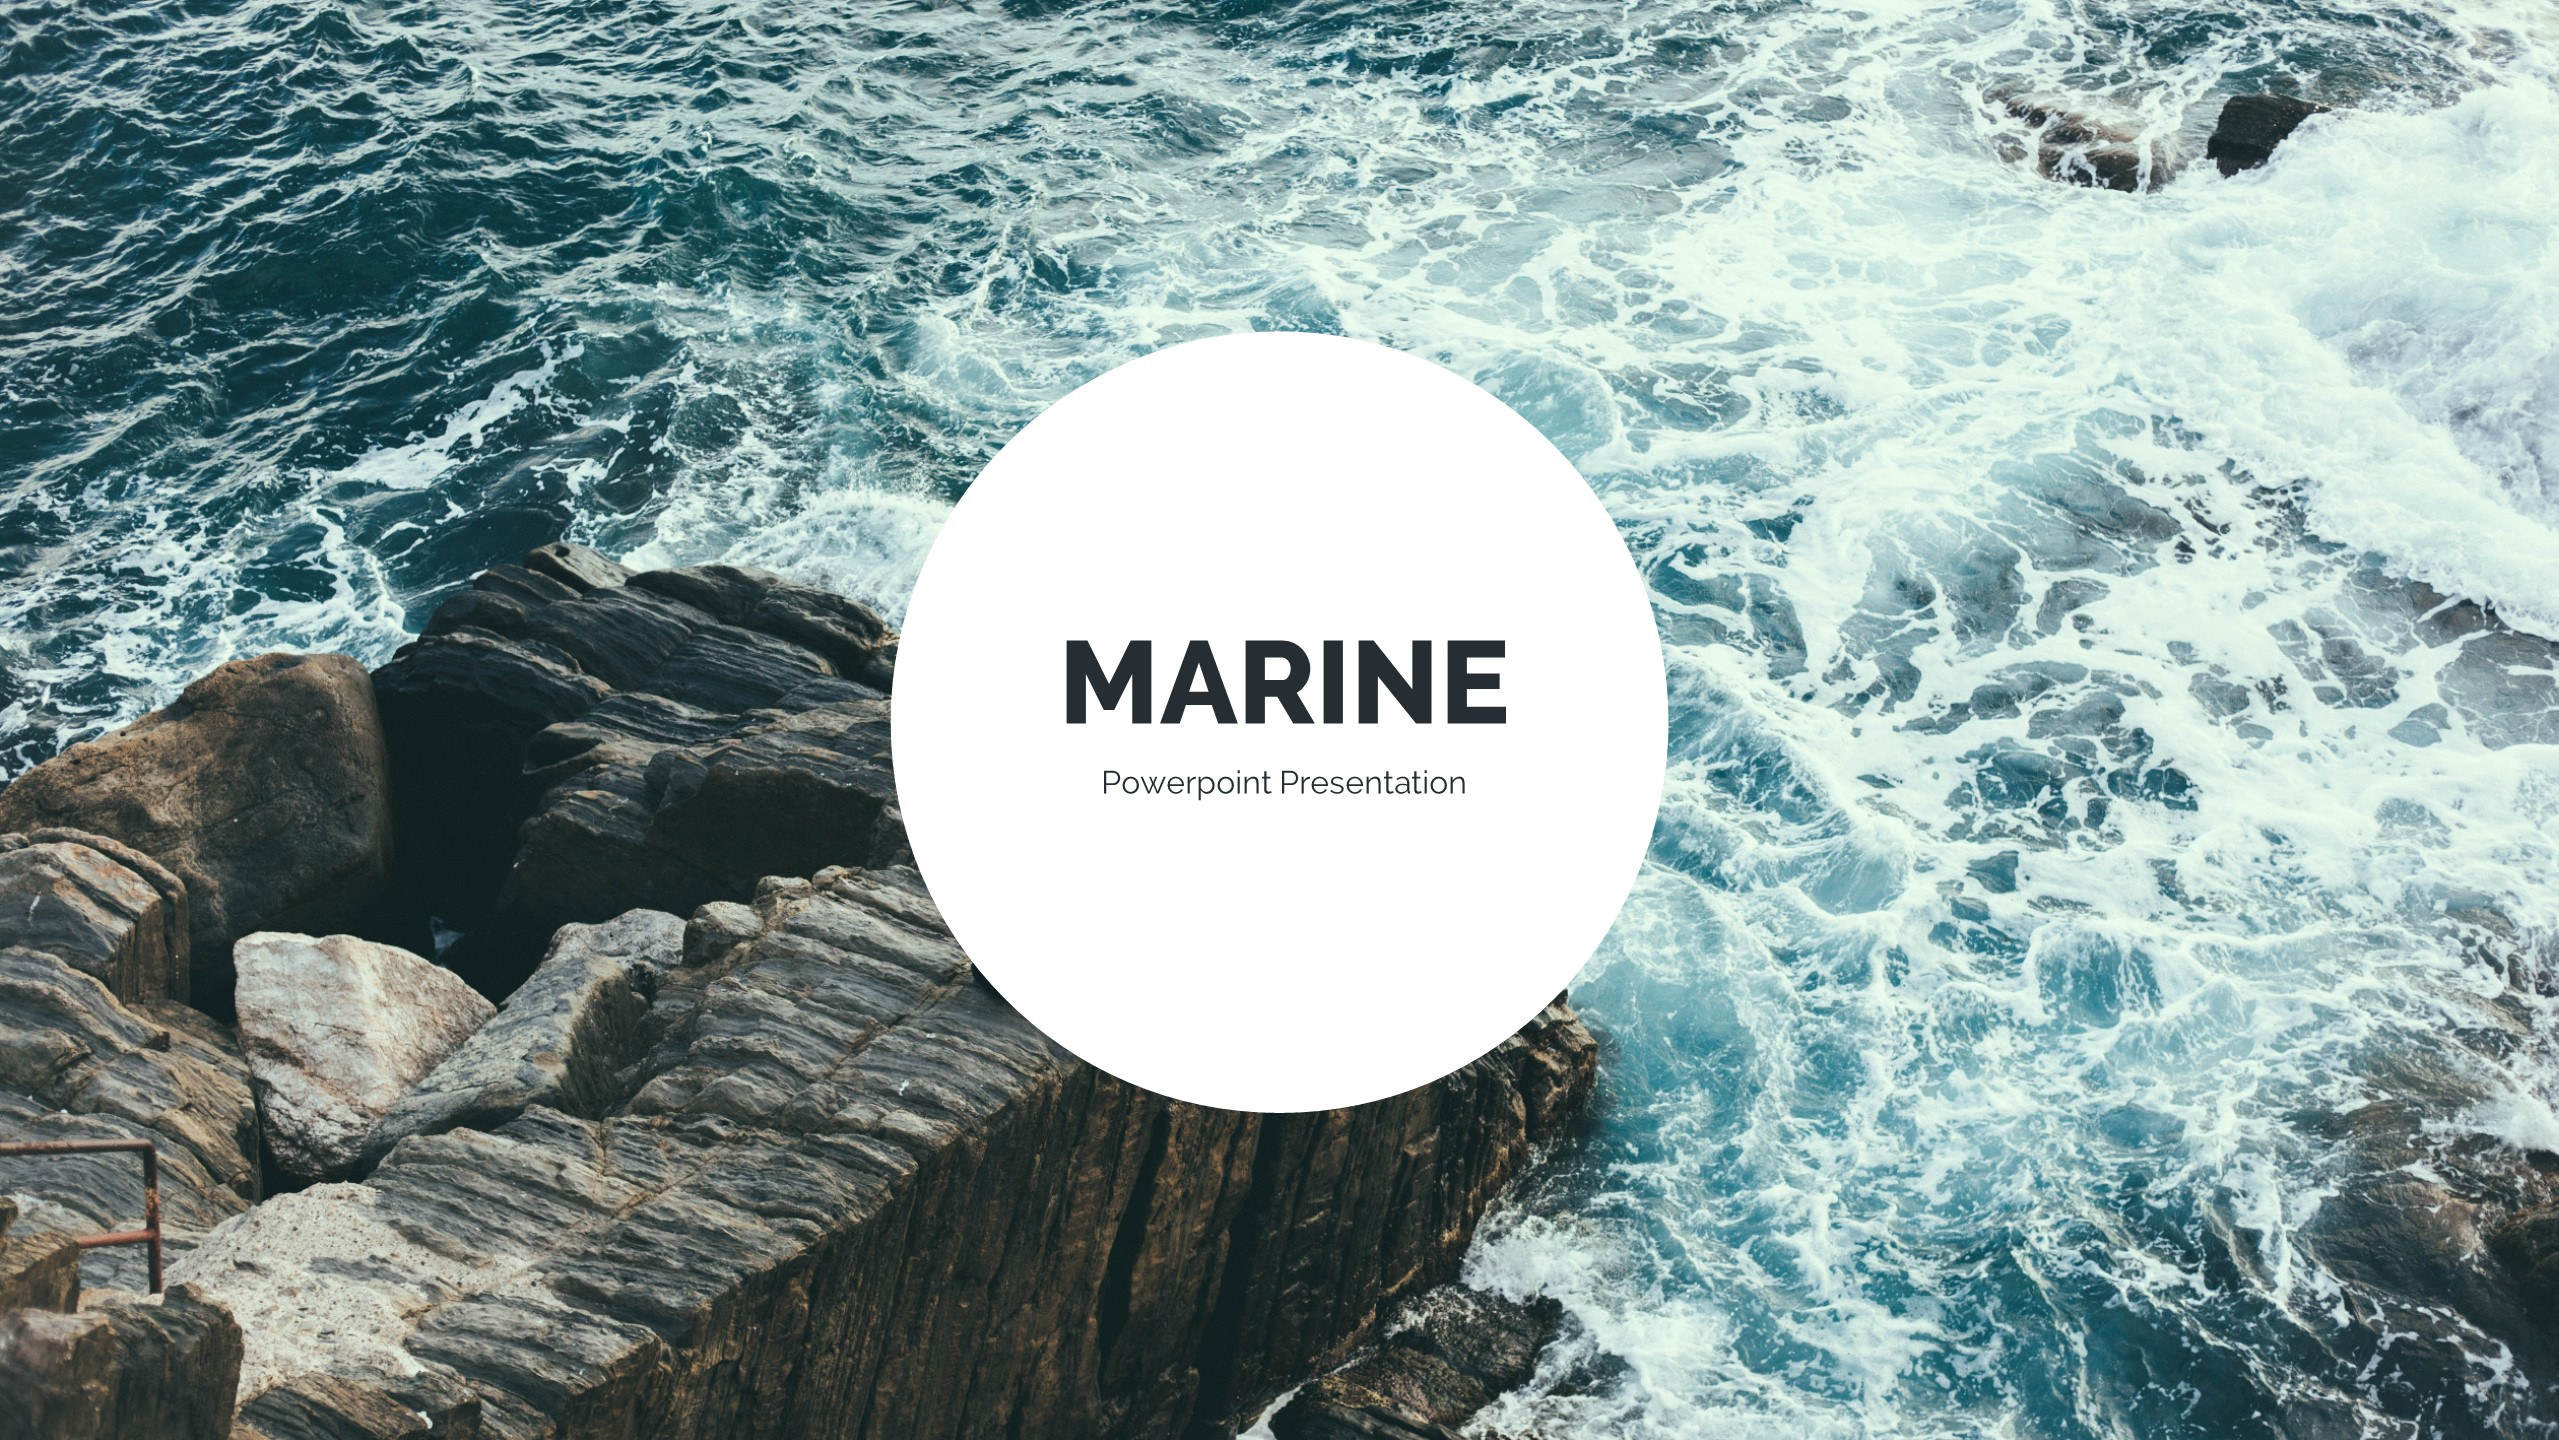 Marine powerpoint template by qiudesigns graphicriver marine powerpoint template toneelgroepblik Images